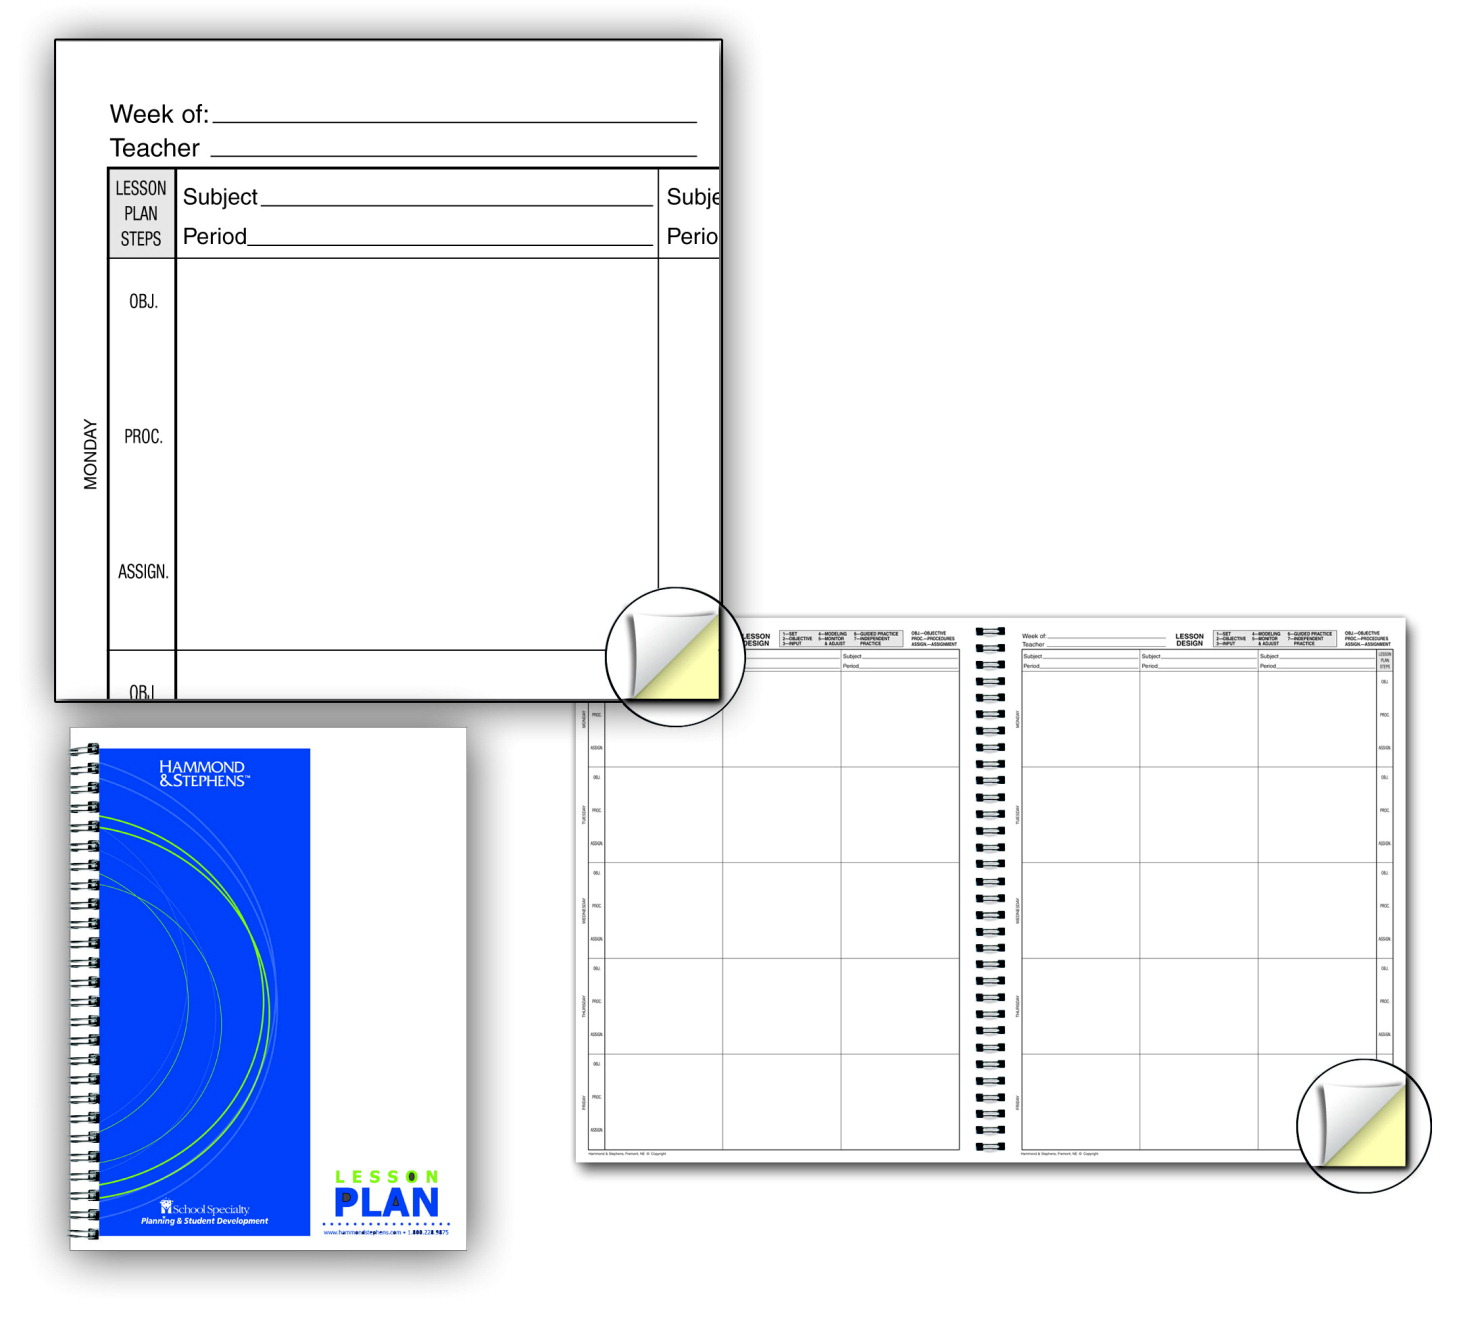 Hammond and stephens lesson plan book white yellow for Plan books